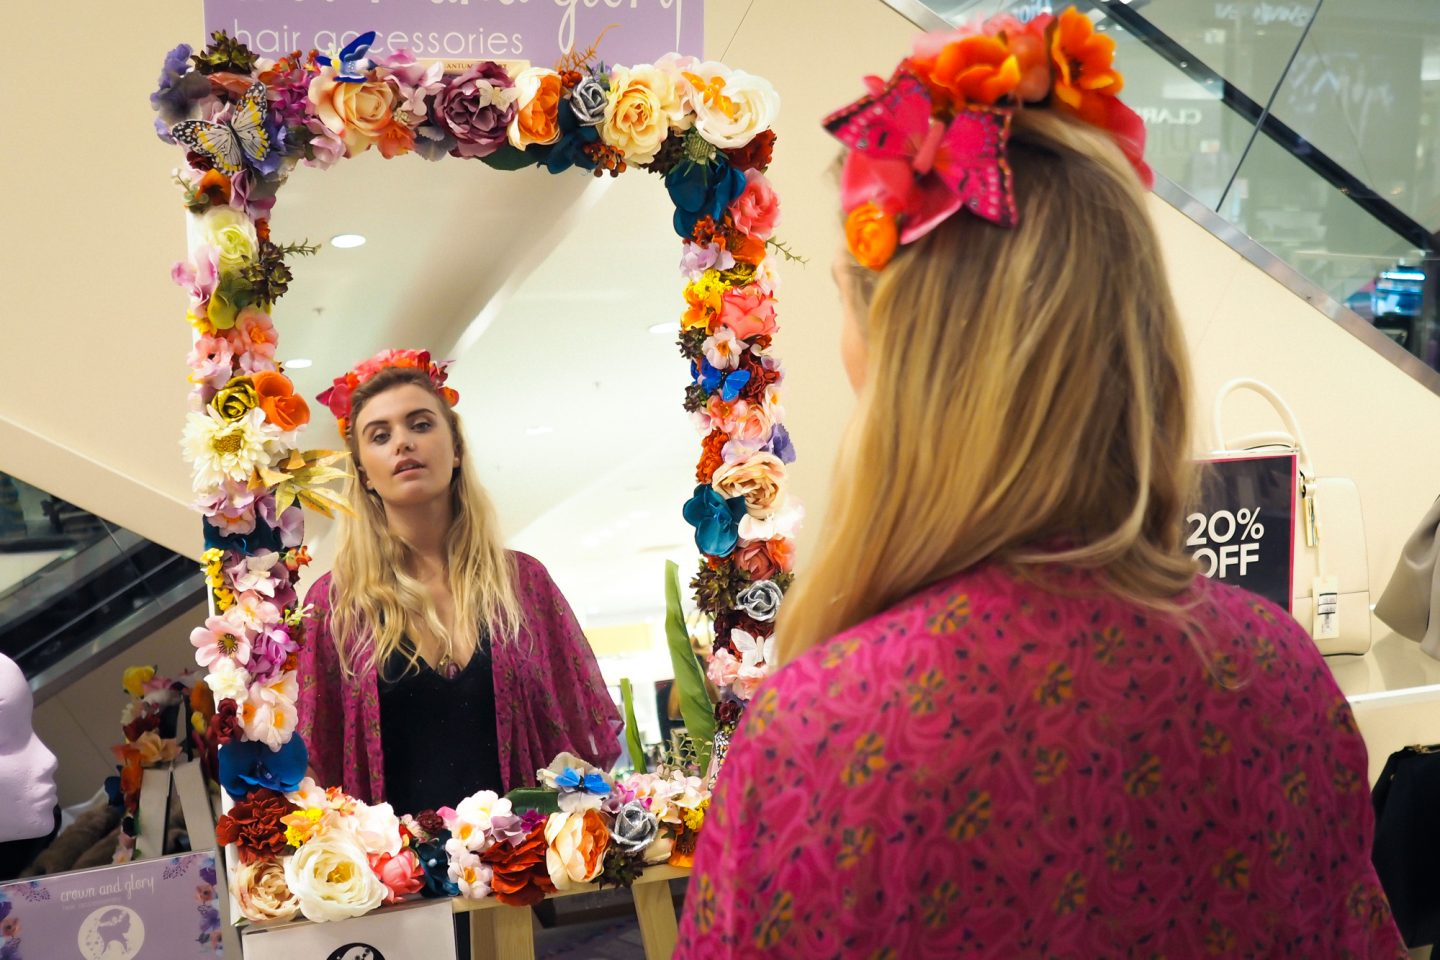 Making floral headpieces with Crown & Glory at House of Fraser